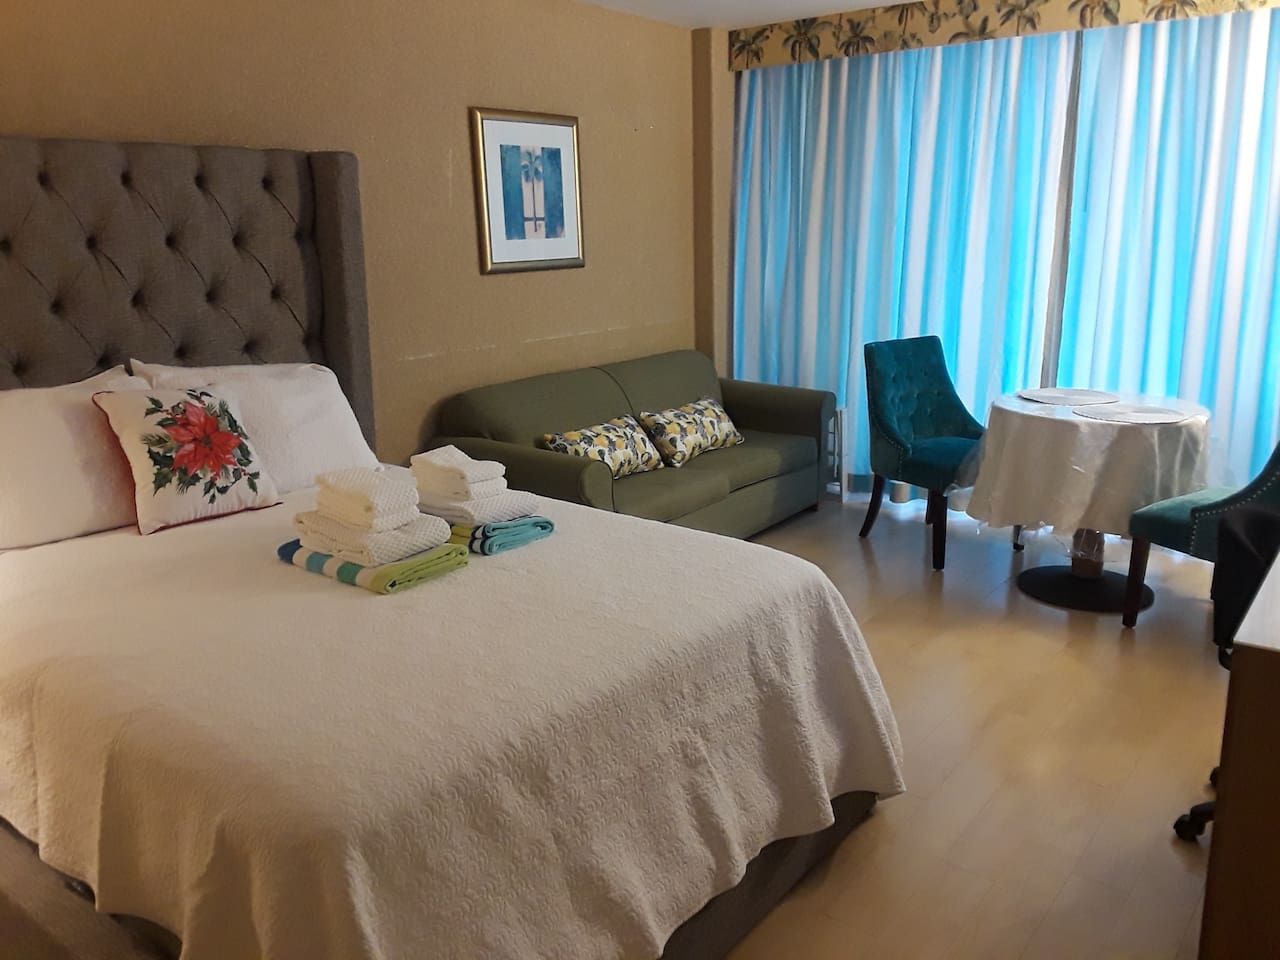 We have a queen size bed and long sofa and 2 chairs and dinner table. we have desk also.